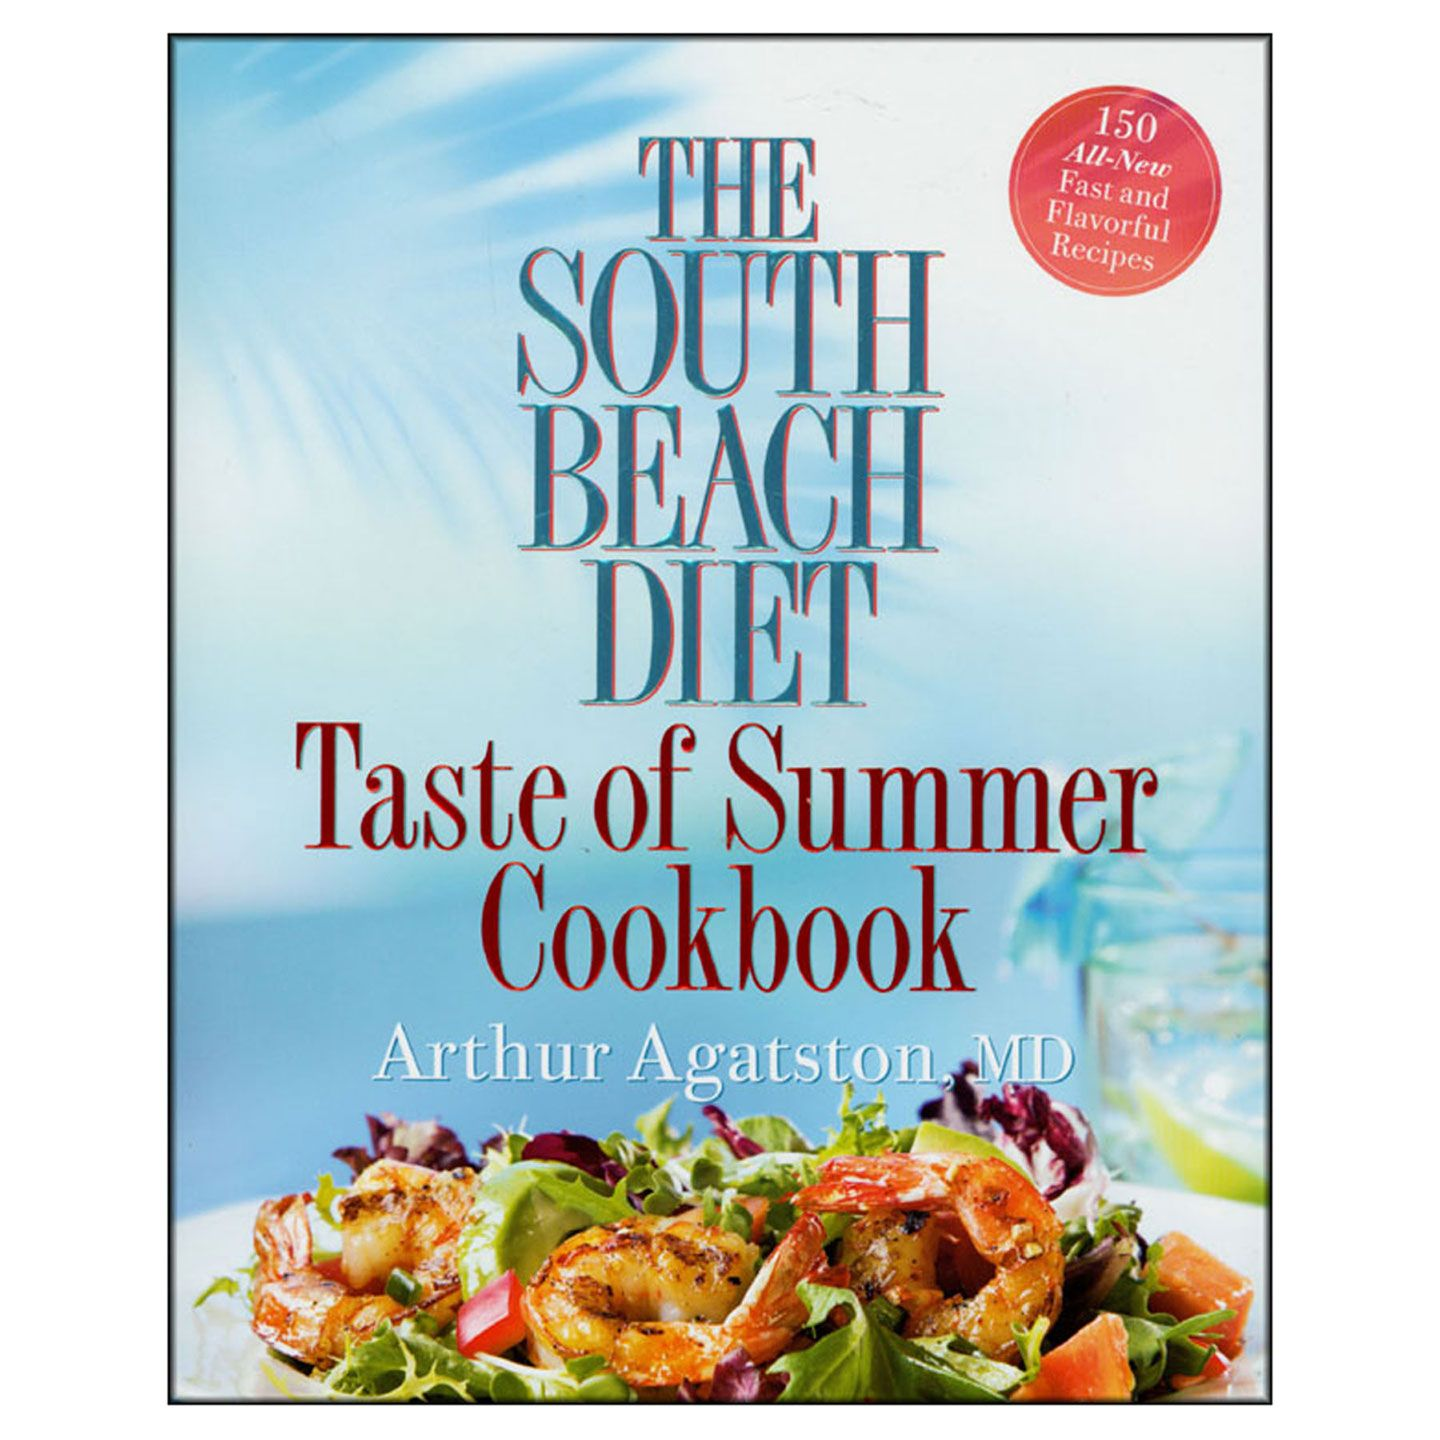 Great Deal! The South Beach Diet, Taste of Summer cookbook  Reg. $30, now $10.99  at Beyondtherack.com,  use link to join exclusive shopping website for members only    http://www.beyondtherack.com/member/invite/NLN7108A75D